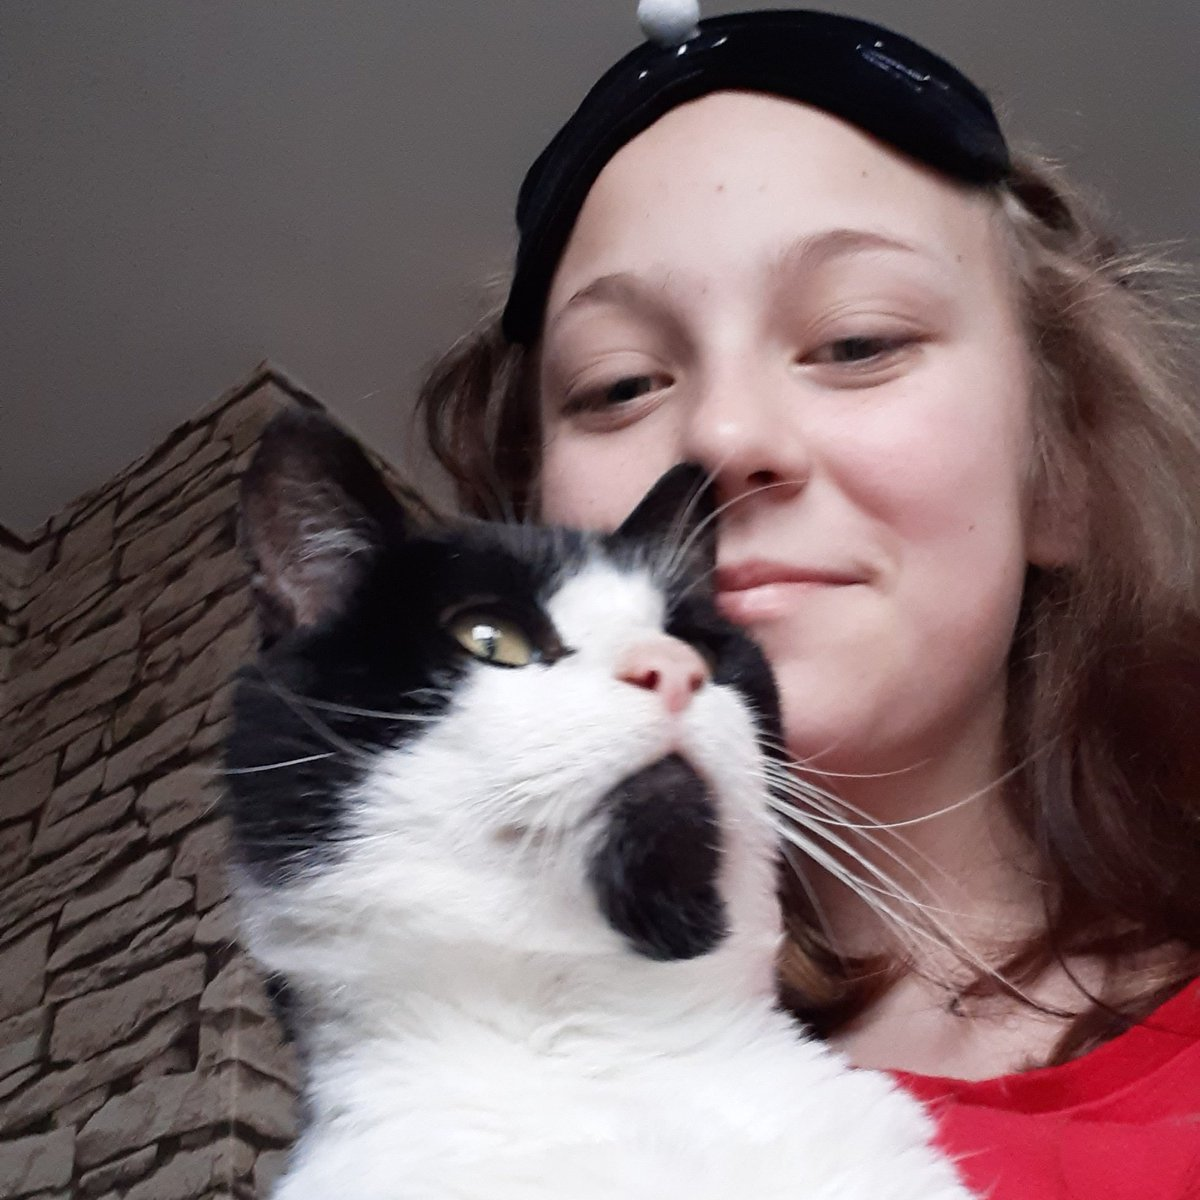 STYPP member Brooklynn is sharing a 'silly selfie' of herself and her cat in an attempt to spread some cheer on this #BlueMonday #bluemonday2021 thanks Brooklynn you've made us smile 😀